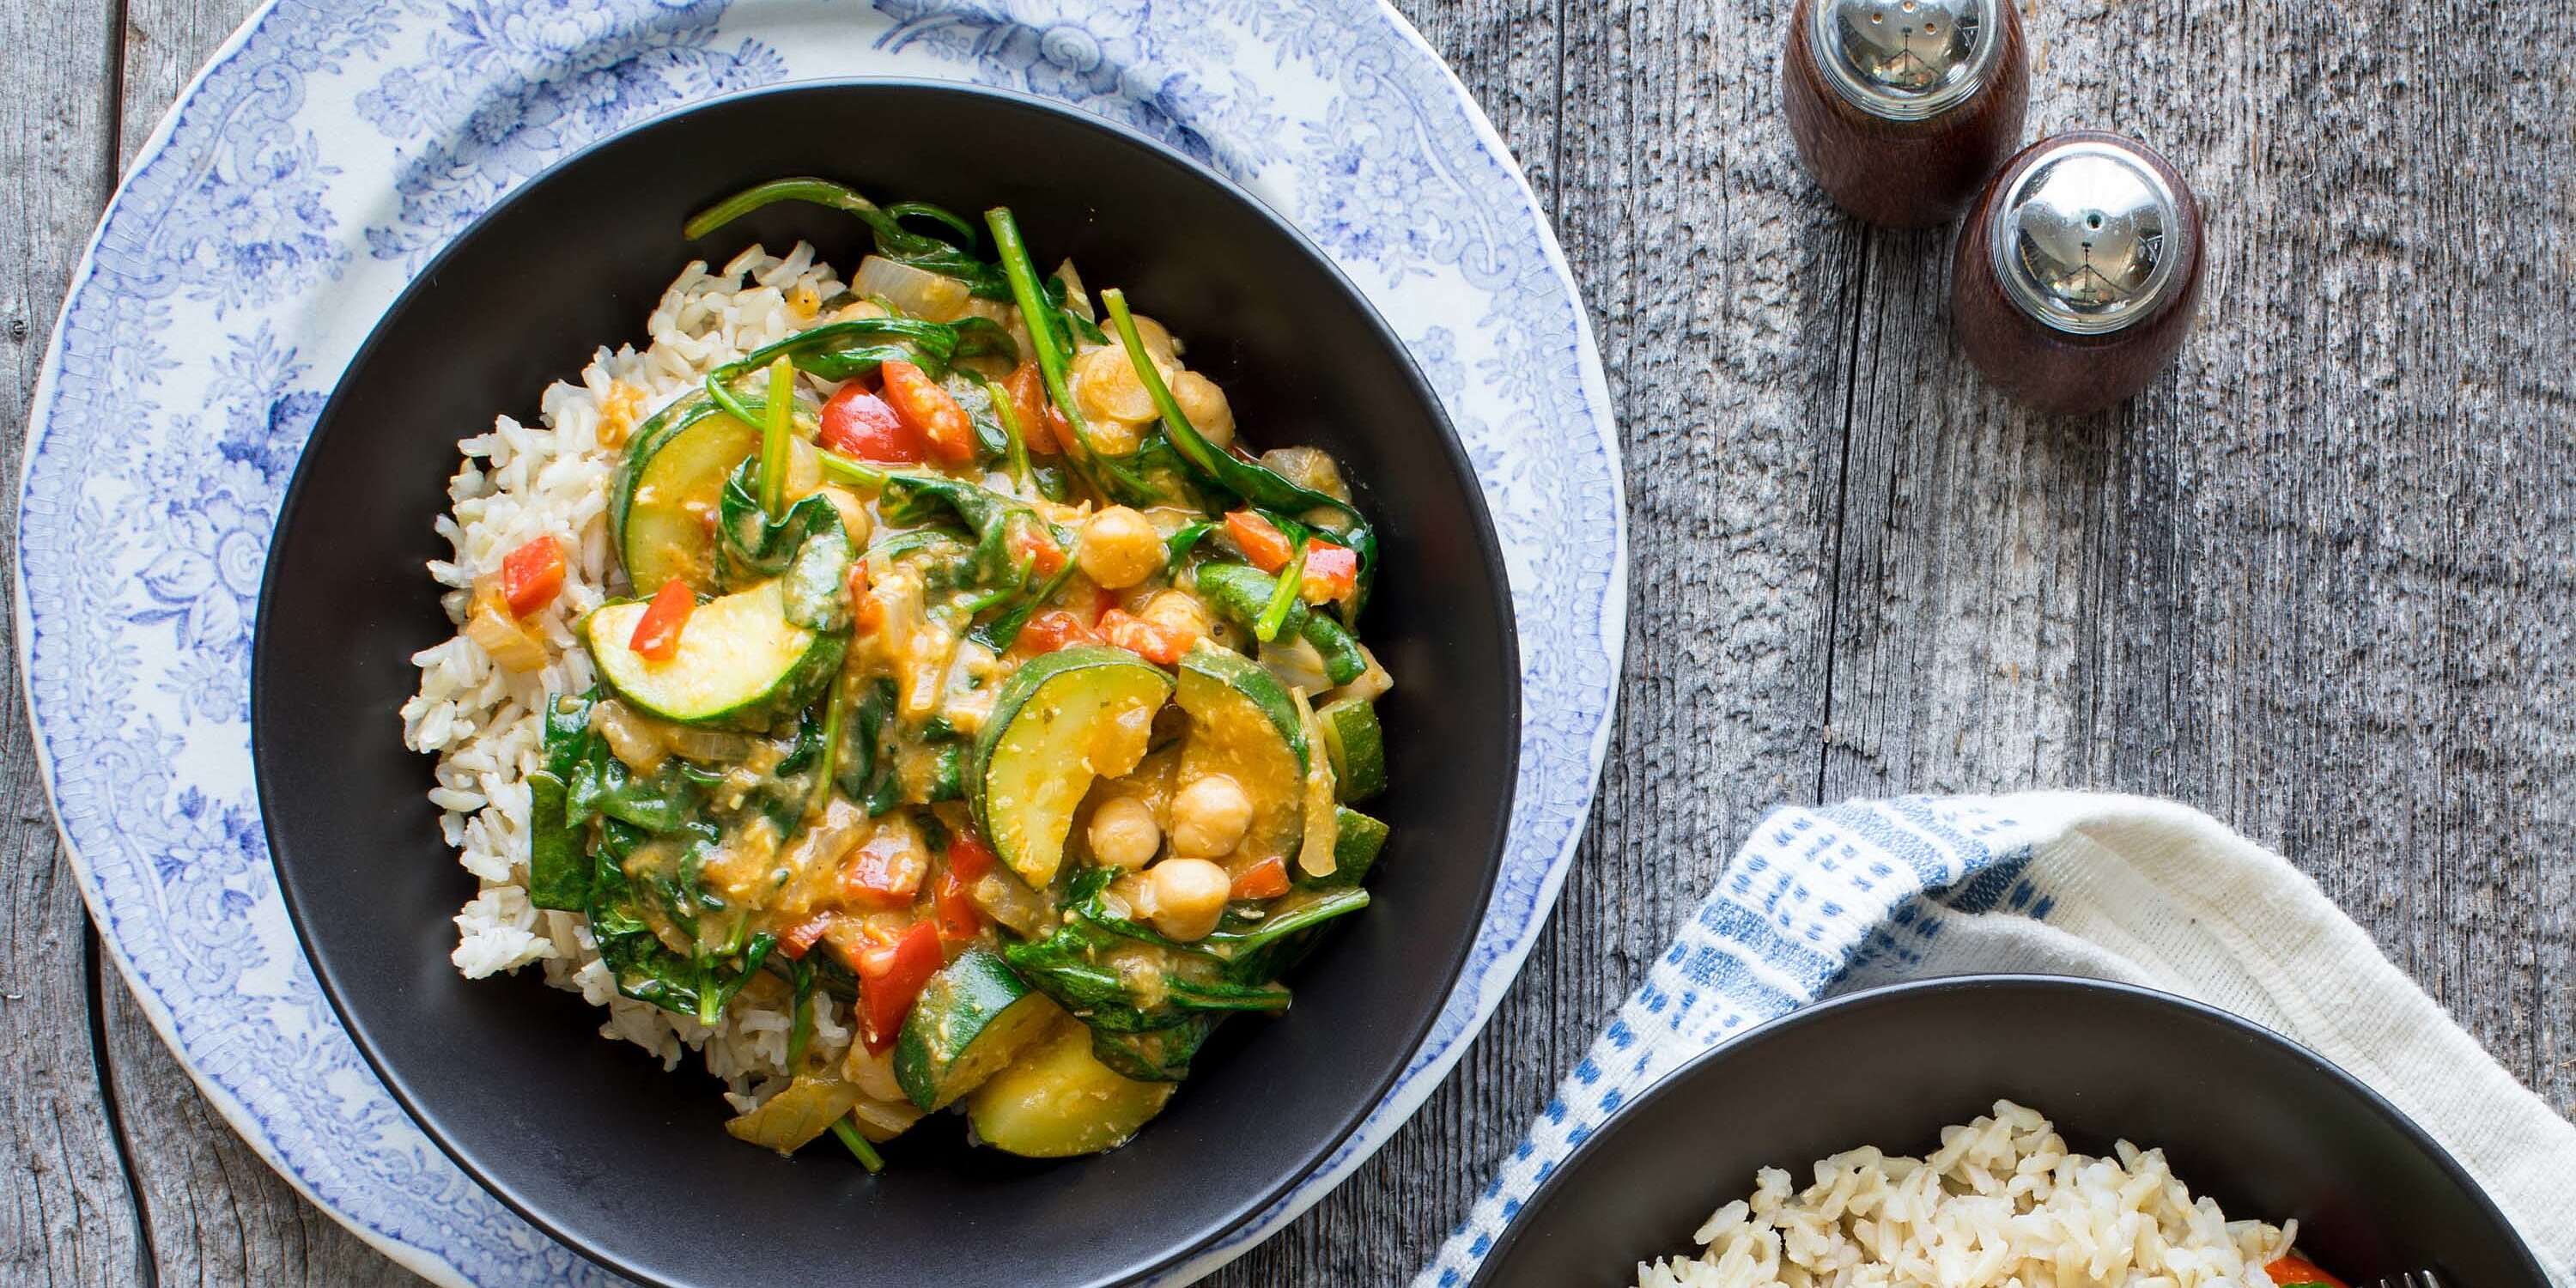 15 Vegan Curry Recipes for a Hearty and Delicious Meal